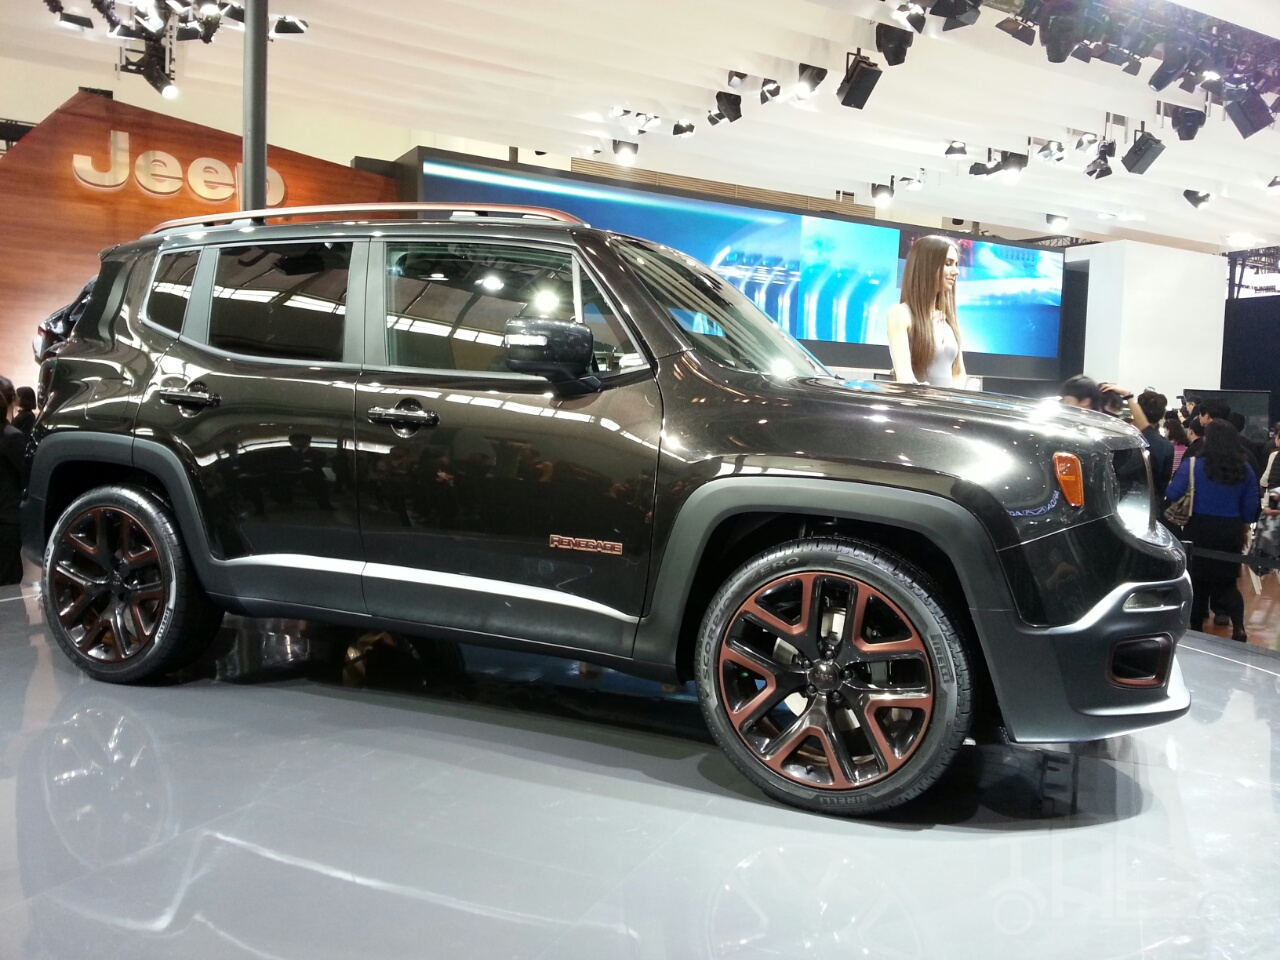 Jeep Renegade Apollo Edition at 2014 Beijing Auto Show - side